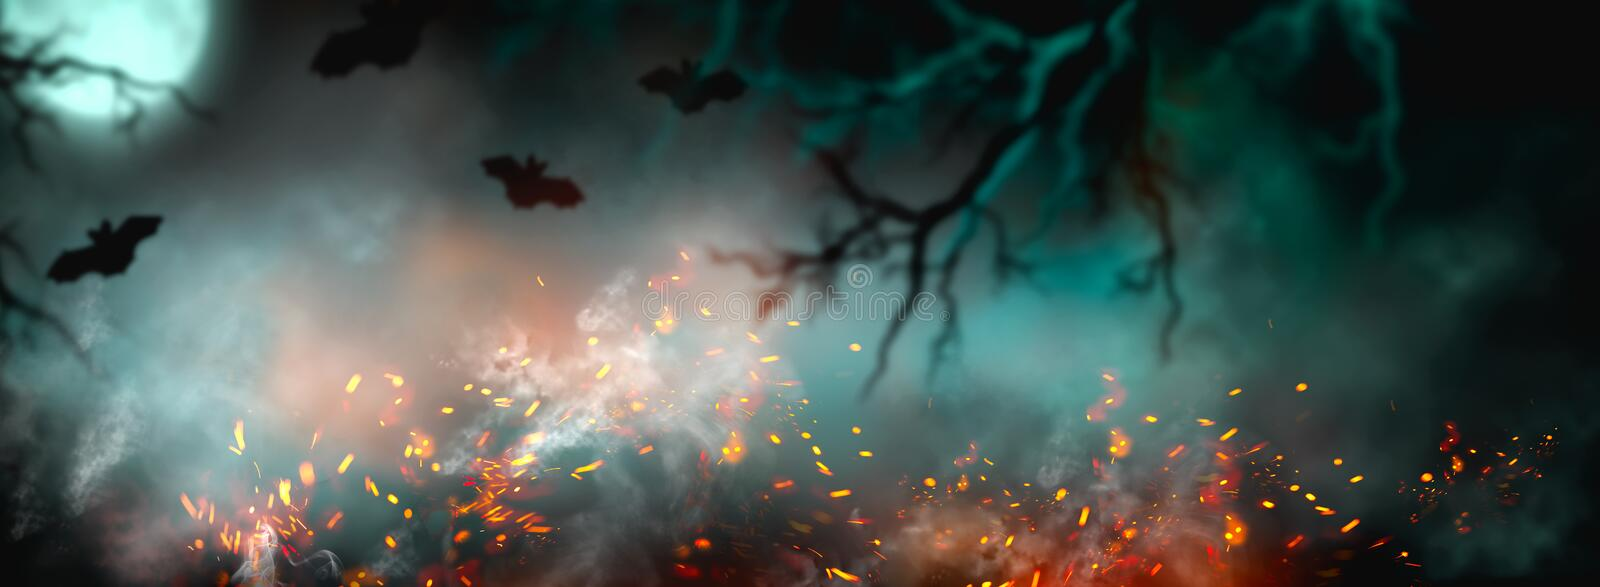 Fantasy Halloween Background. Beautiful dark deep forest backdrop with smoke, fire, vampire bats. Halloween magic holiday collage stock images